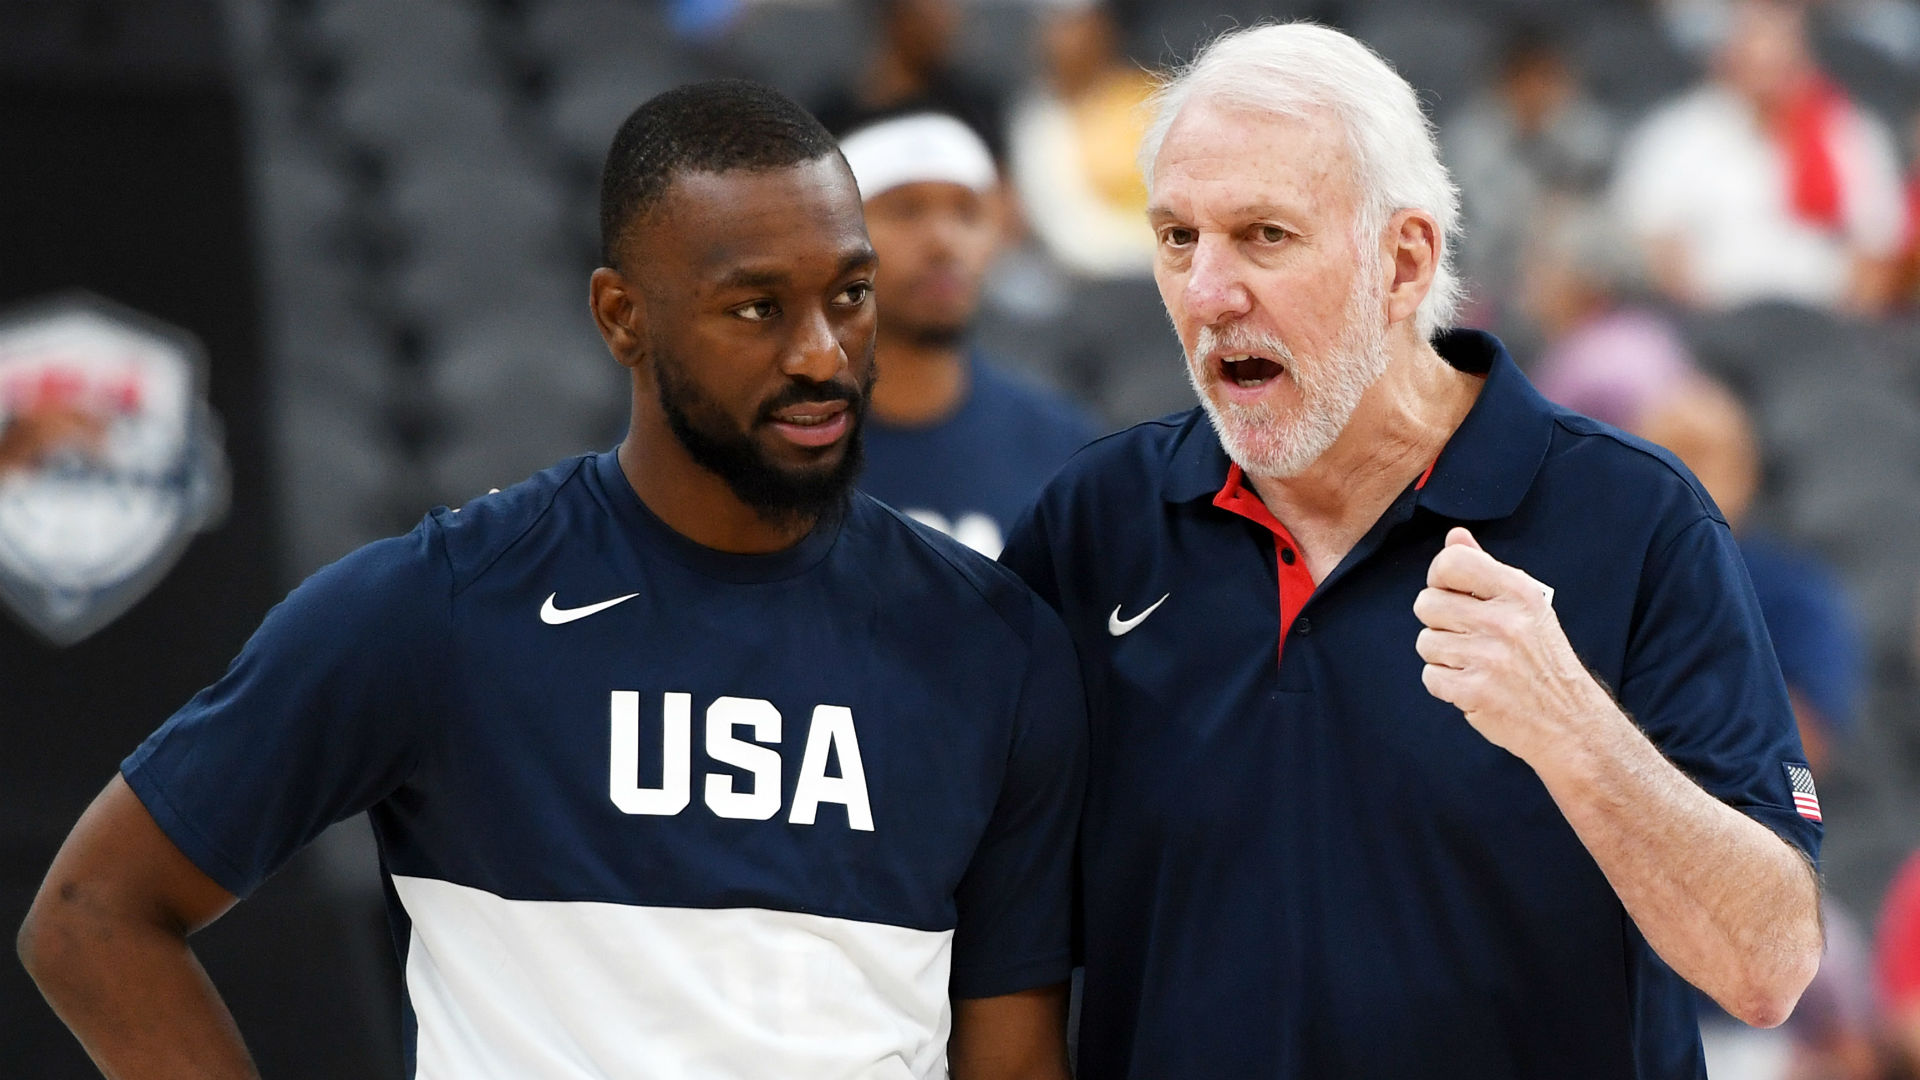 Kemba Walker on Team USA's historic exhibition loss to Australia: 'It was good for us'